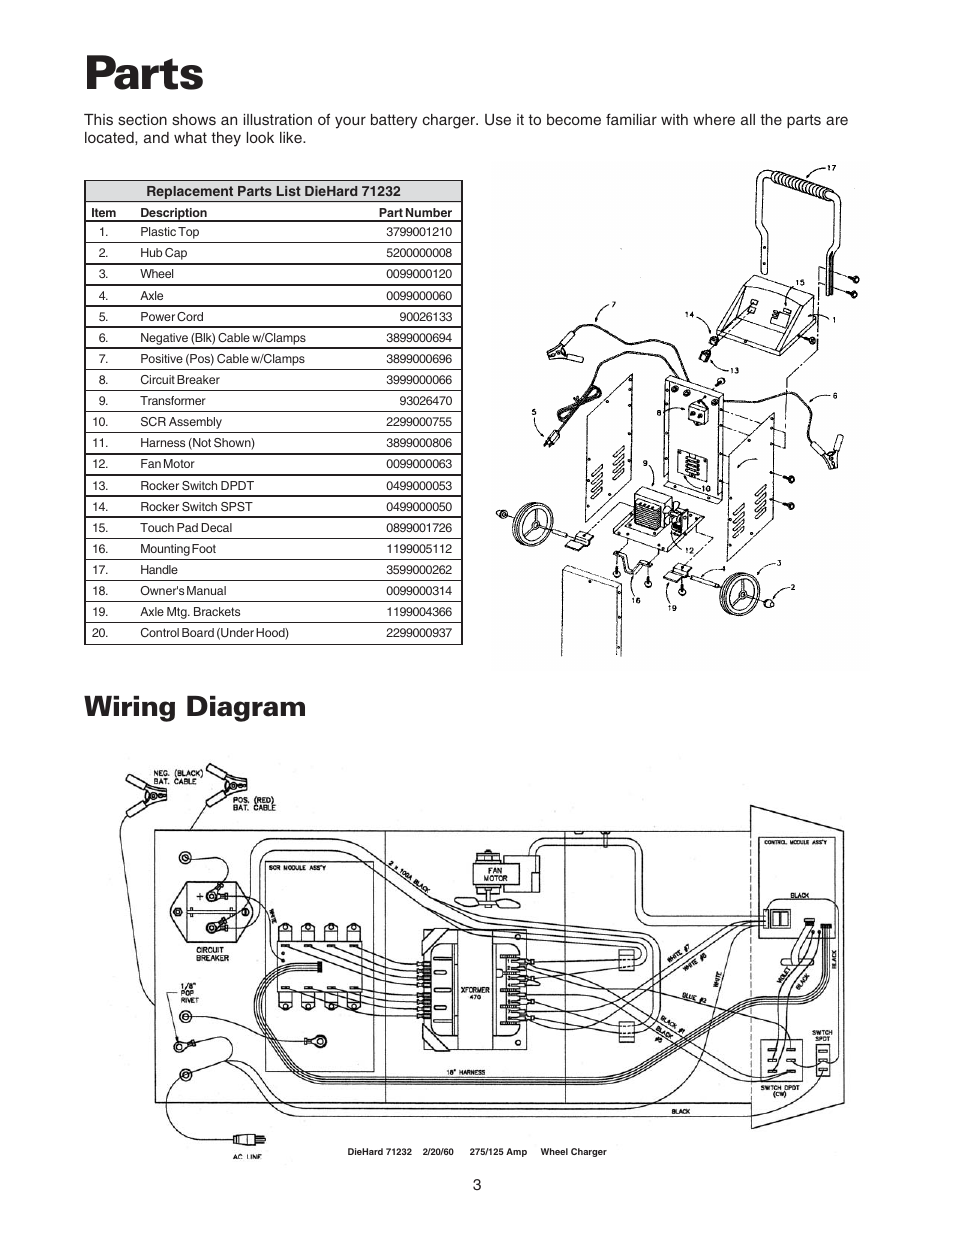 Parts     Wiring       diagram      Sears 20071232 User Manual   Page